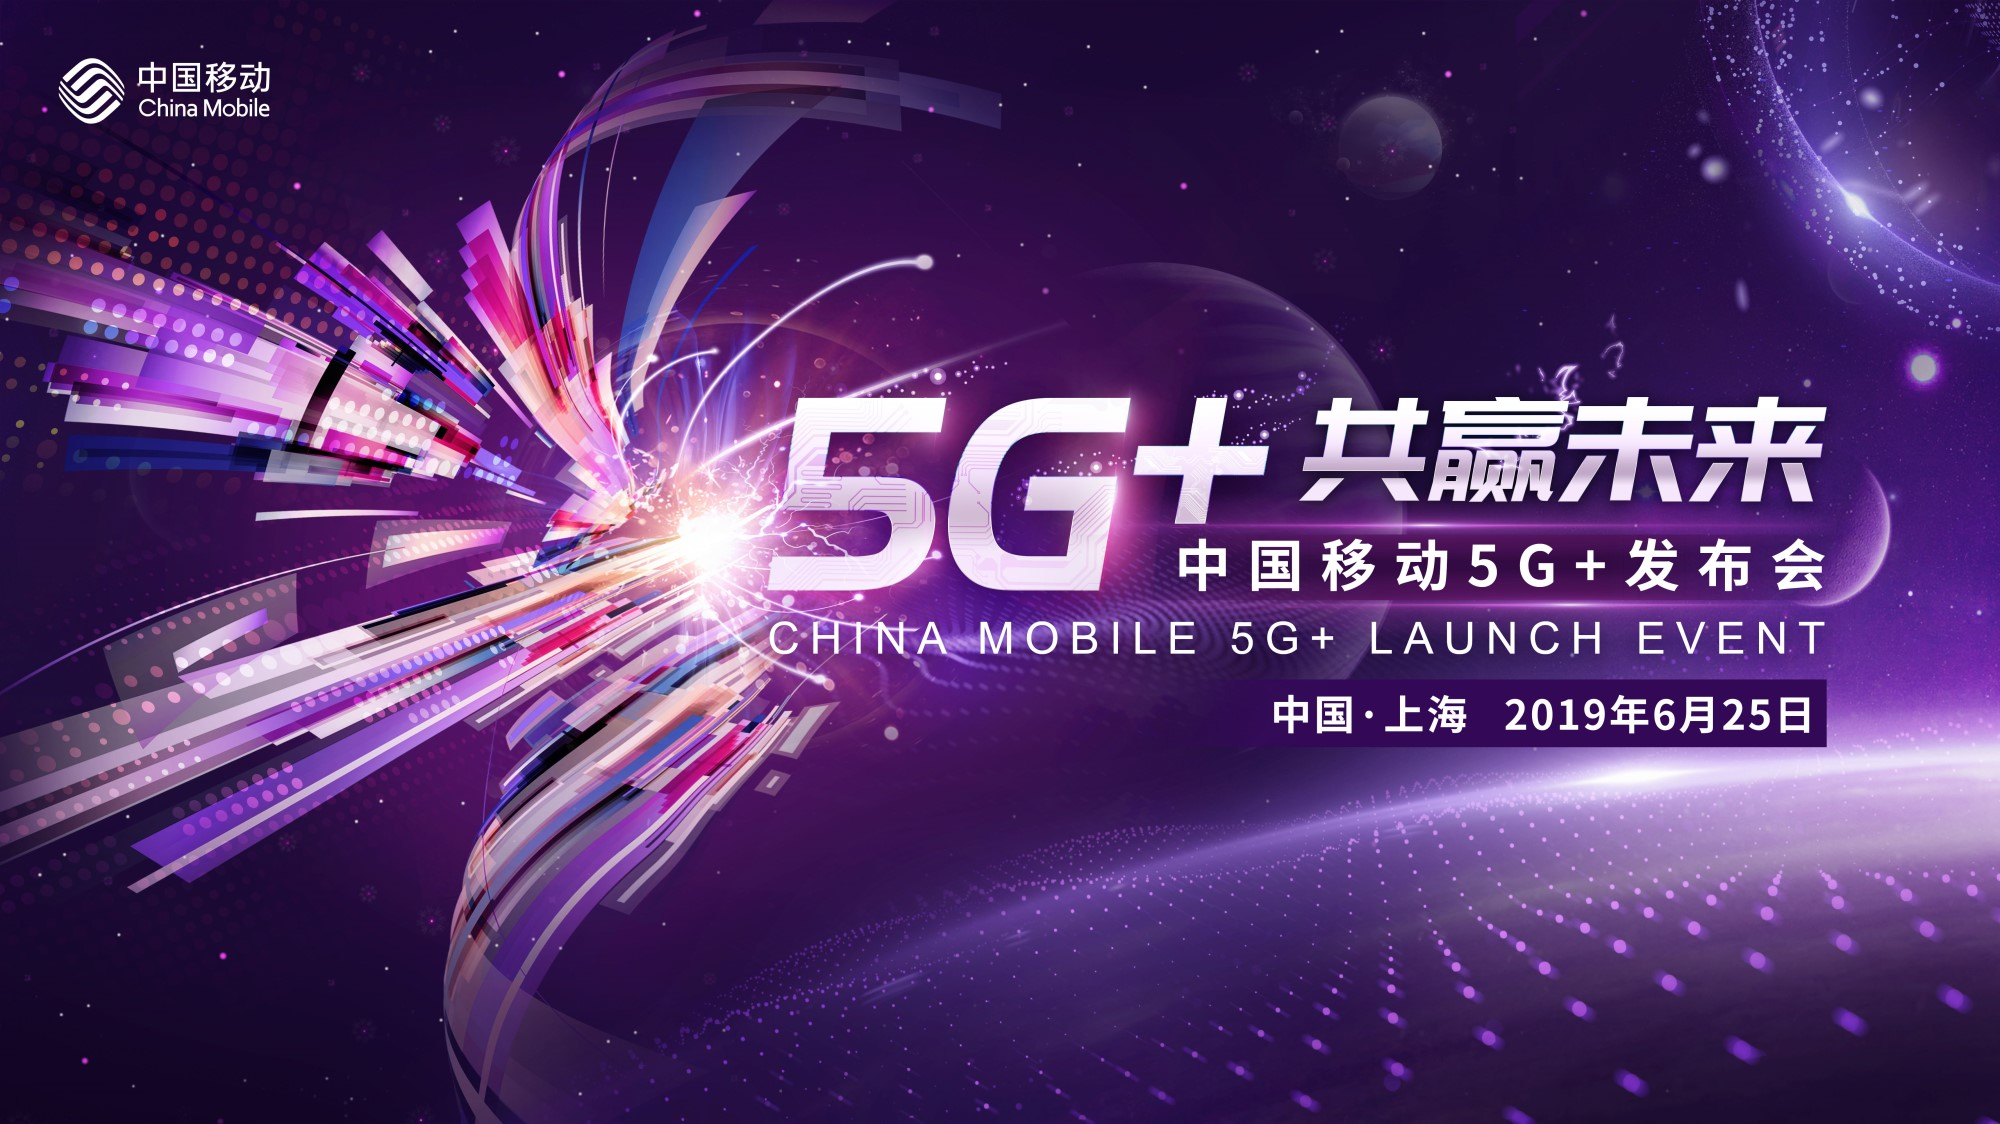 China Mobile Launches $4 Billion 5G Fund